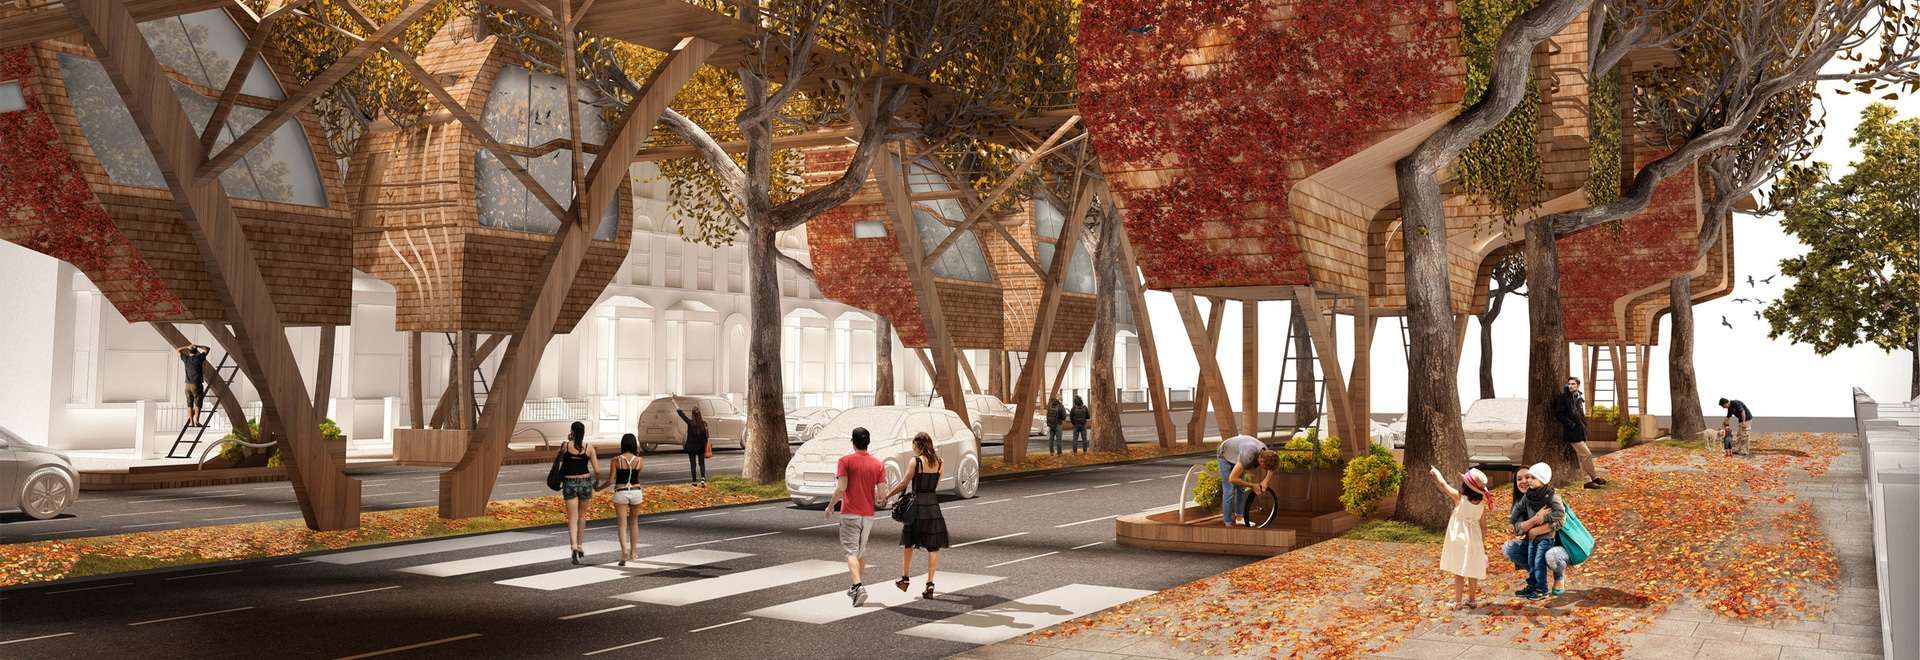 Street Tree Pods: A Creative Proposal to Add More Housing to London